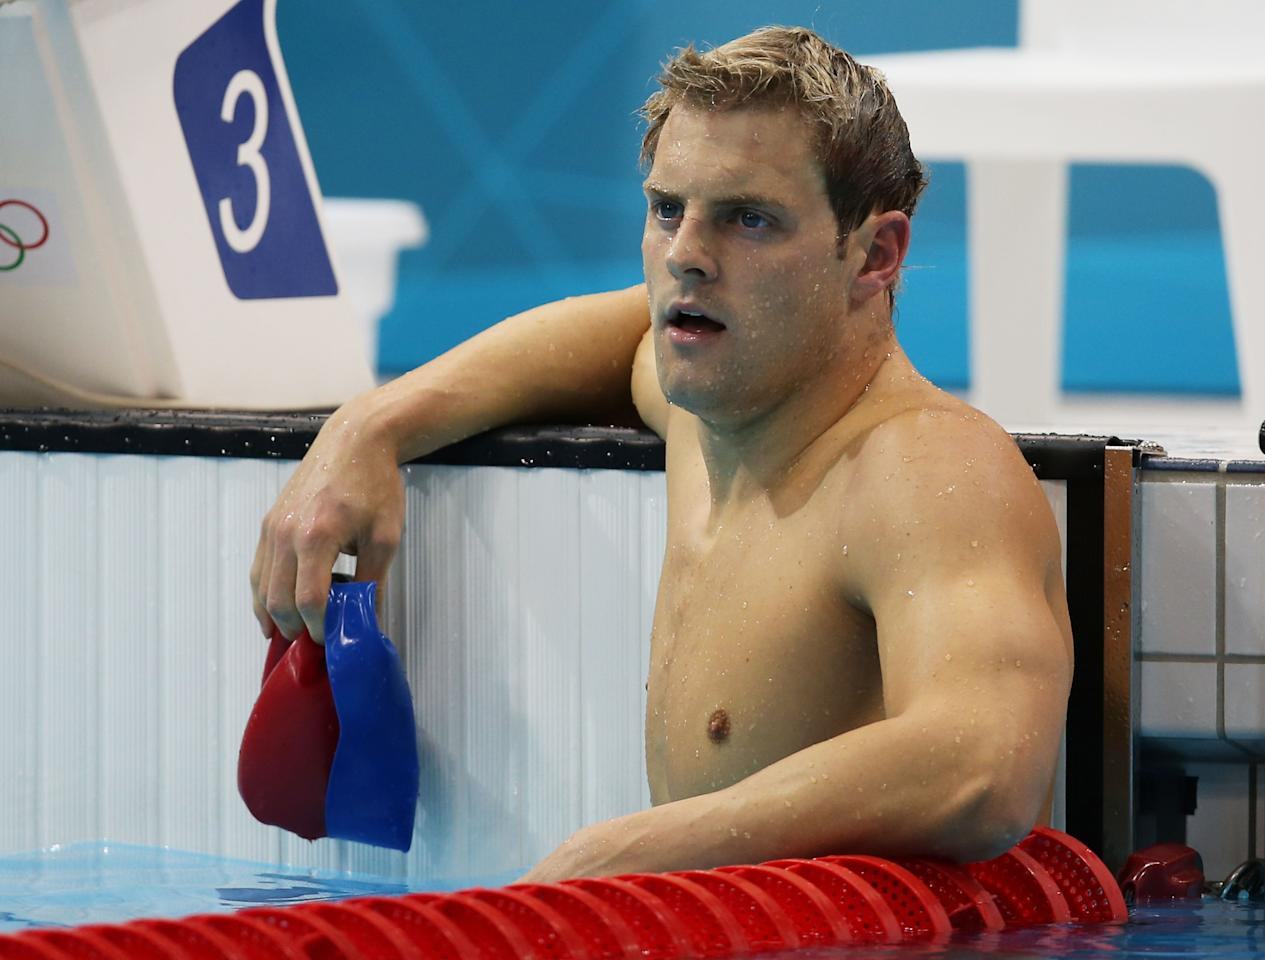 LONDON, ENGLAND - JULY 30:  Liam Tancock of Great Britain looks on after he competed in the Final of the Men's 100m Backstroke on Day 3 of the London 2012 Olympic Games at the Aquatics Centre on July 30, 2012 in London, England.  (Photo by Clive Rose/Getty Images)